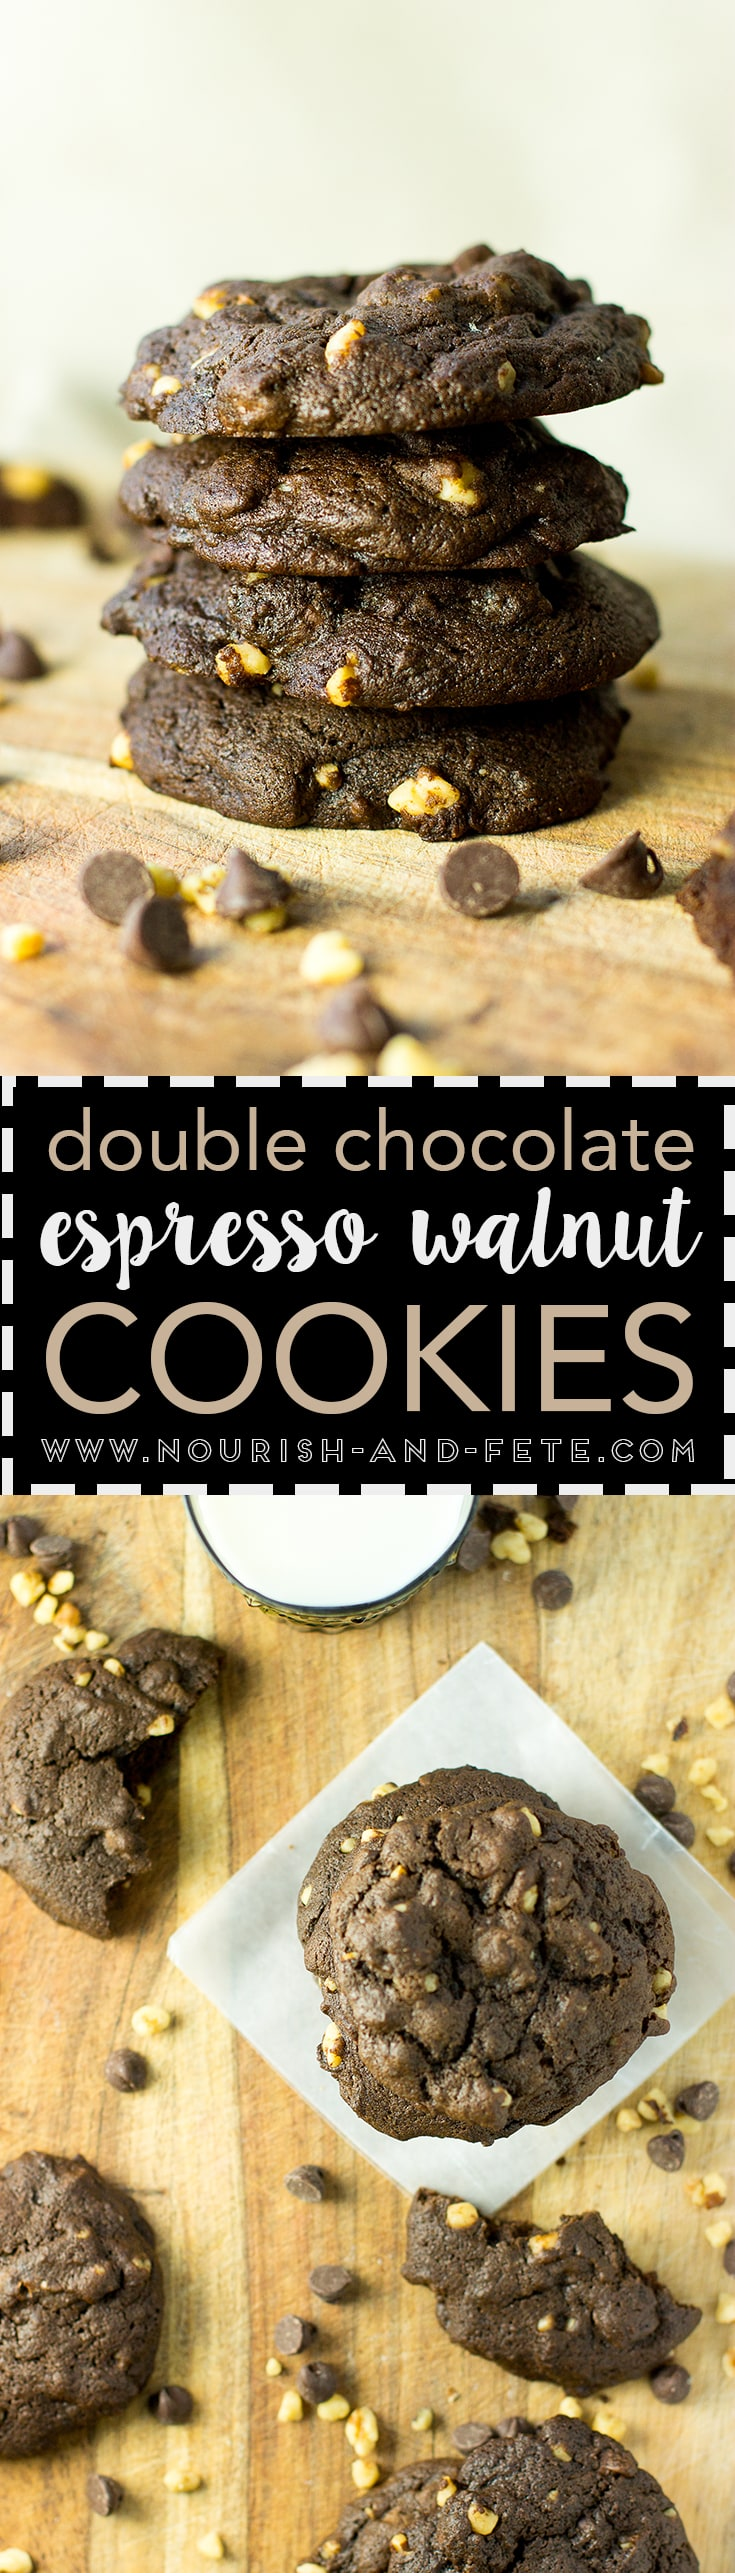 Thick, chewy chocolate espresso cookies stuffed with chocolate chips and walnuts. Mixed in one bowl in less than 10 minutes. Perfection!